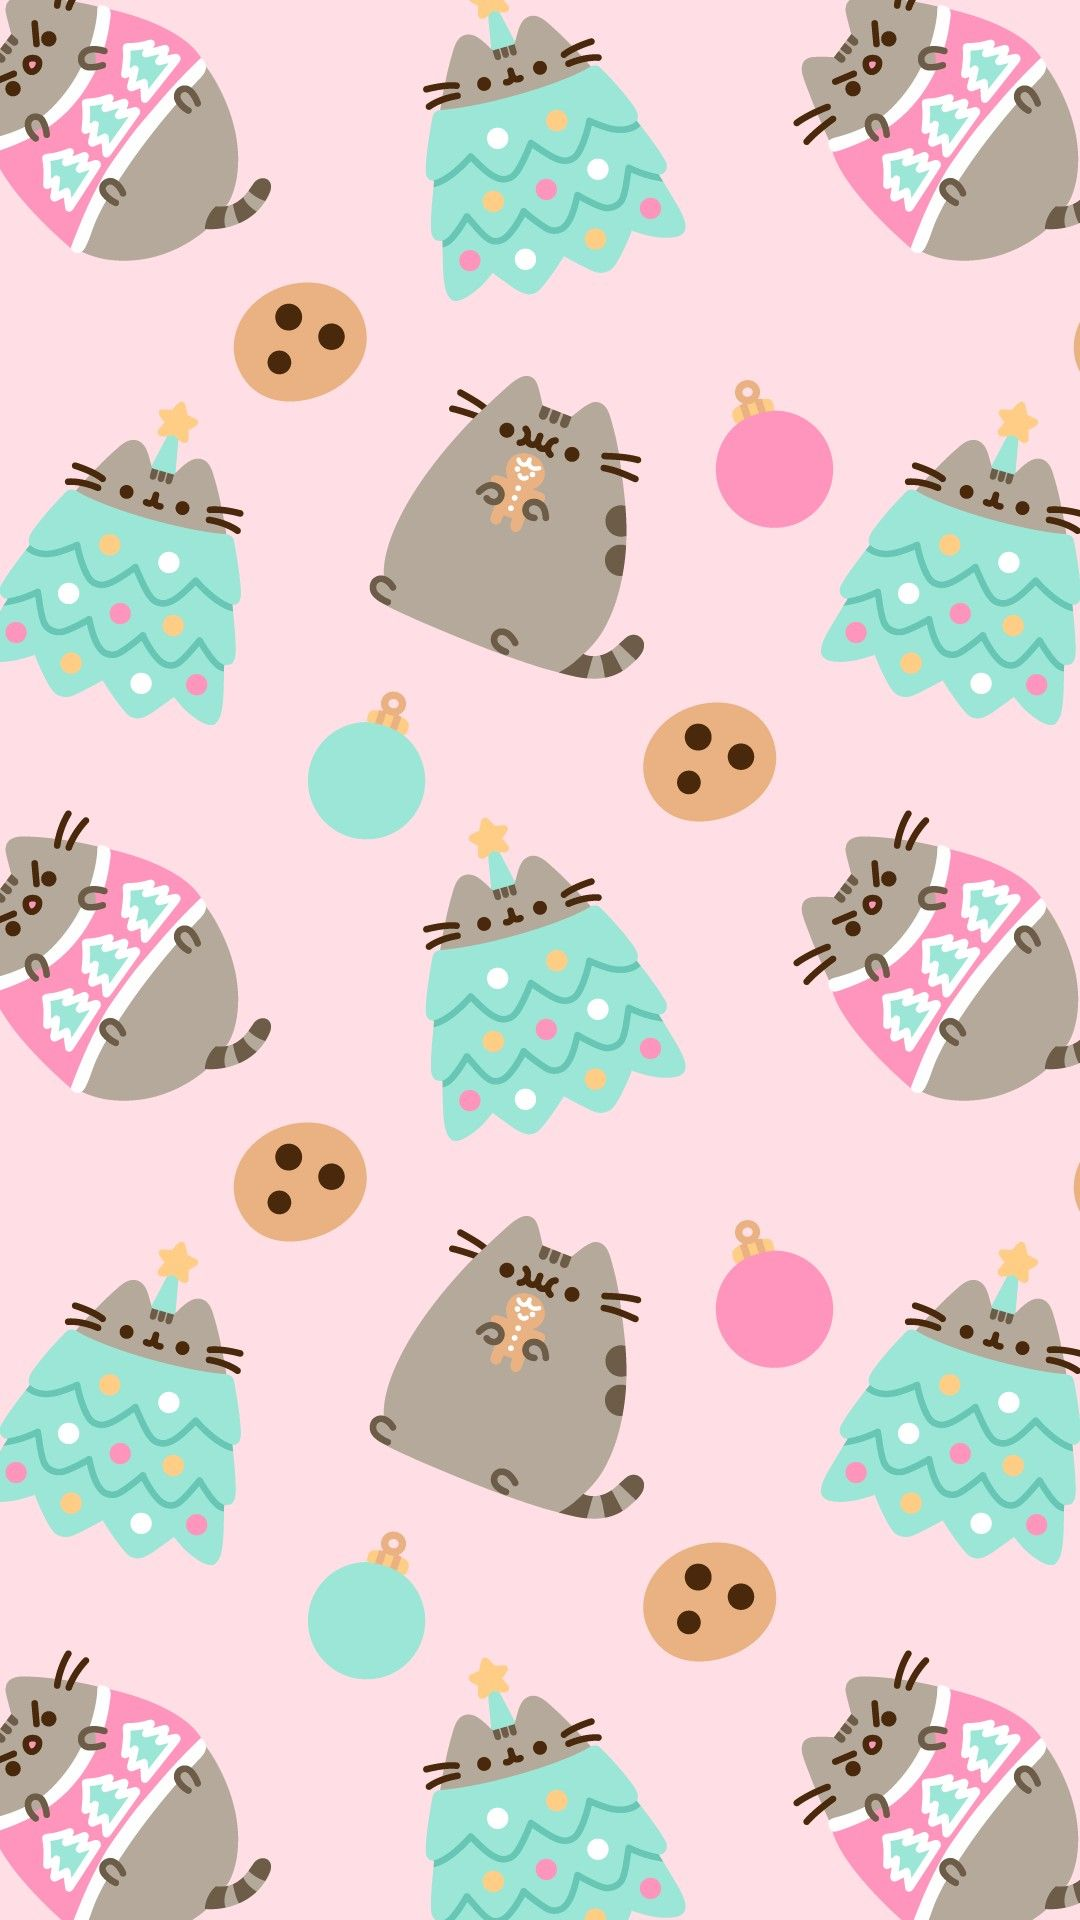 Pin by Salma Said on pusheen